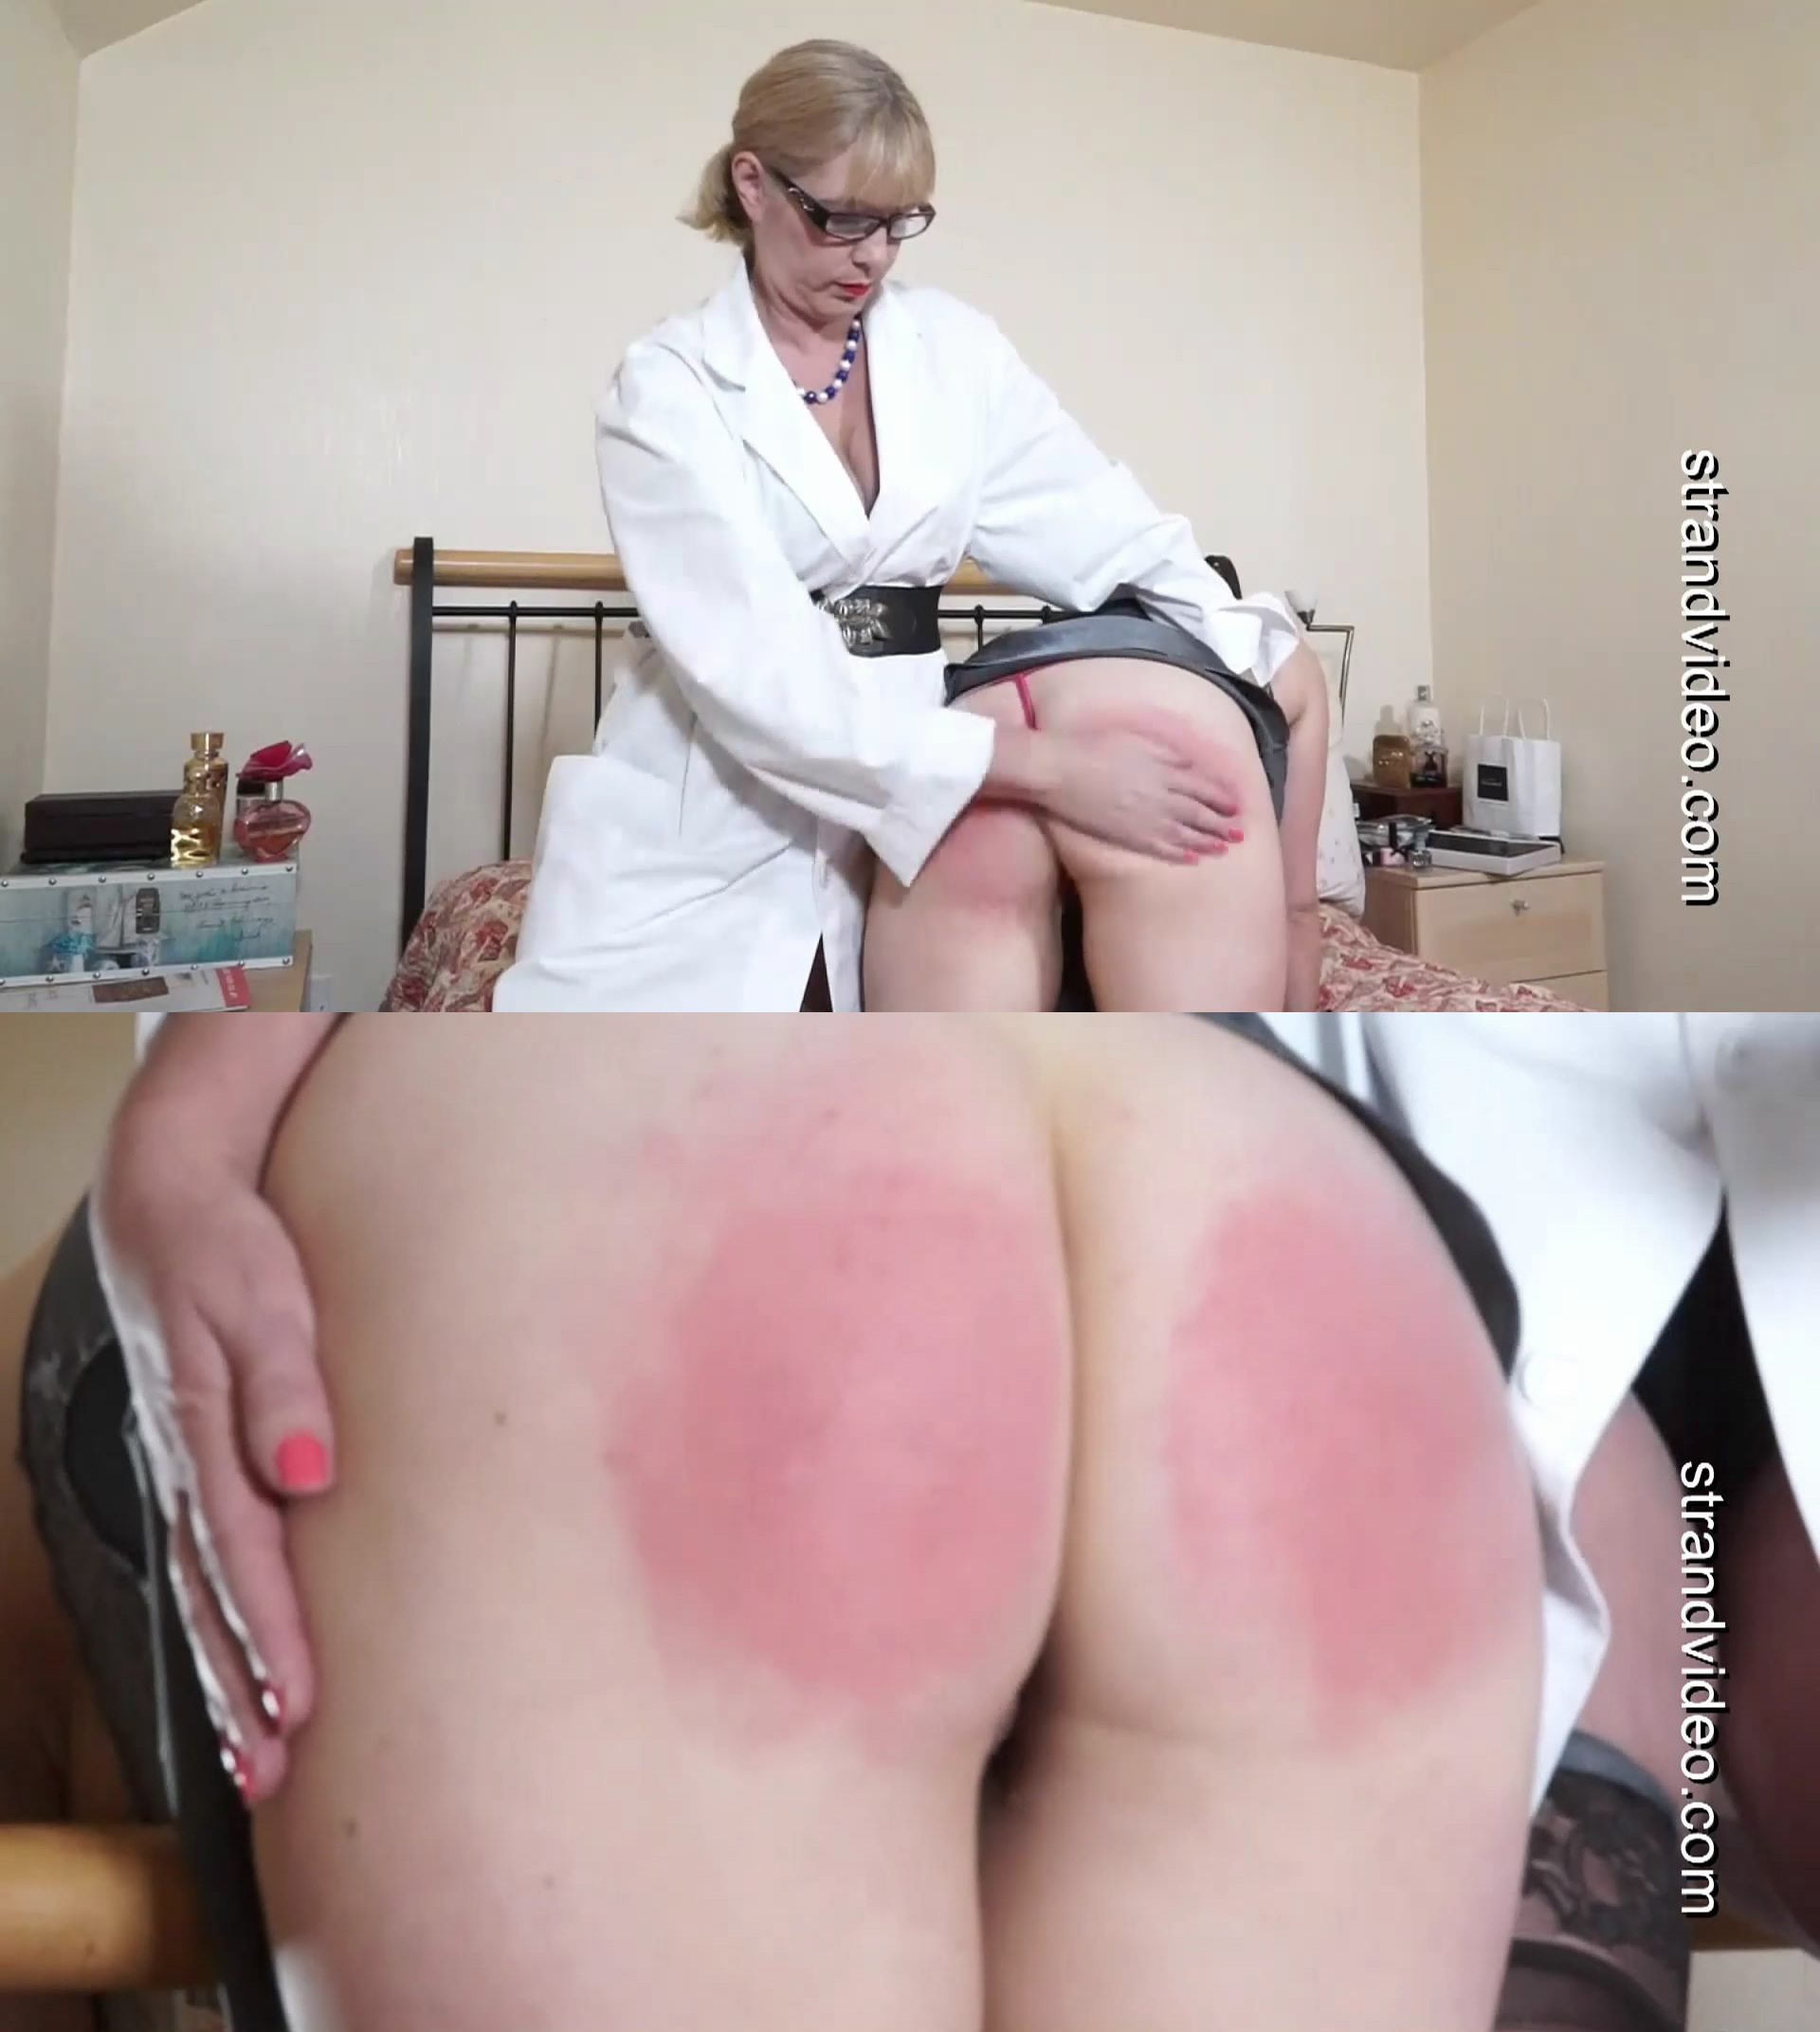 English Spankers/Spanking Sarah – MP4/Full HD – Louise Burton,Sarah Stern – I don't like work spr-1718